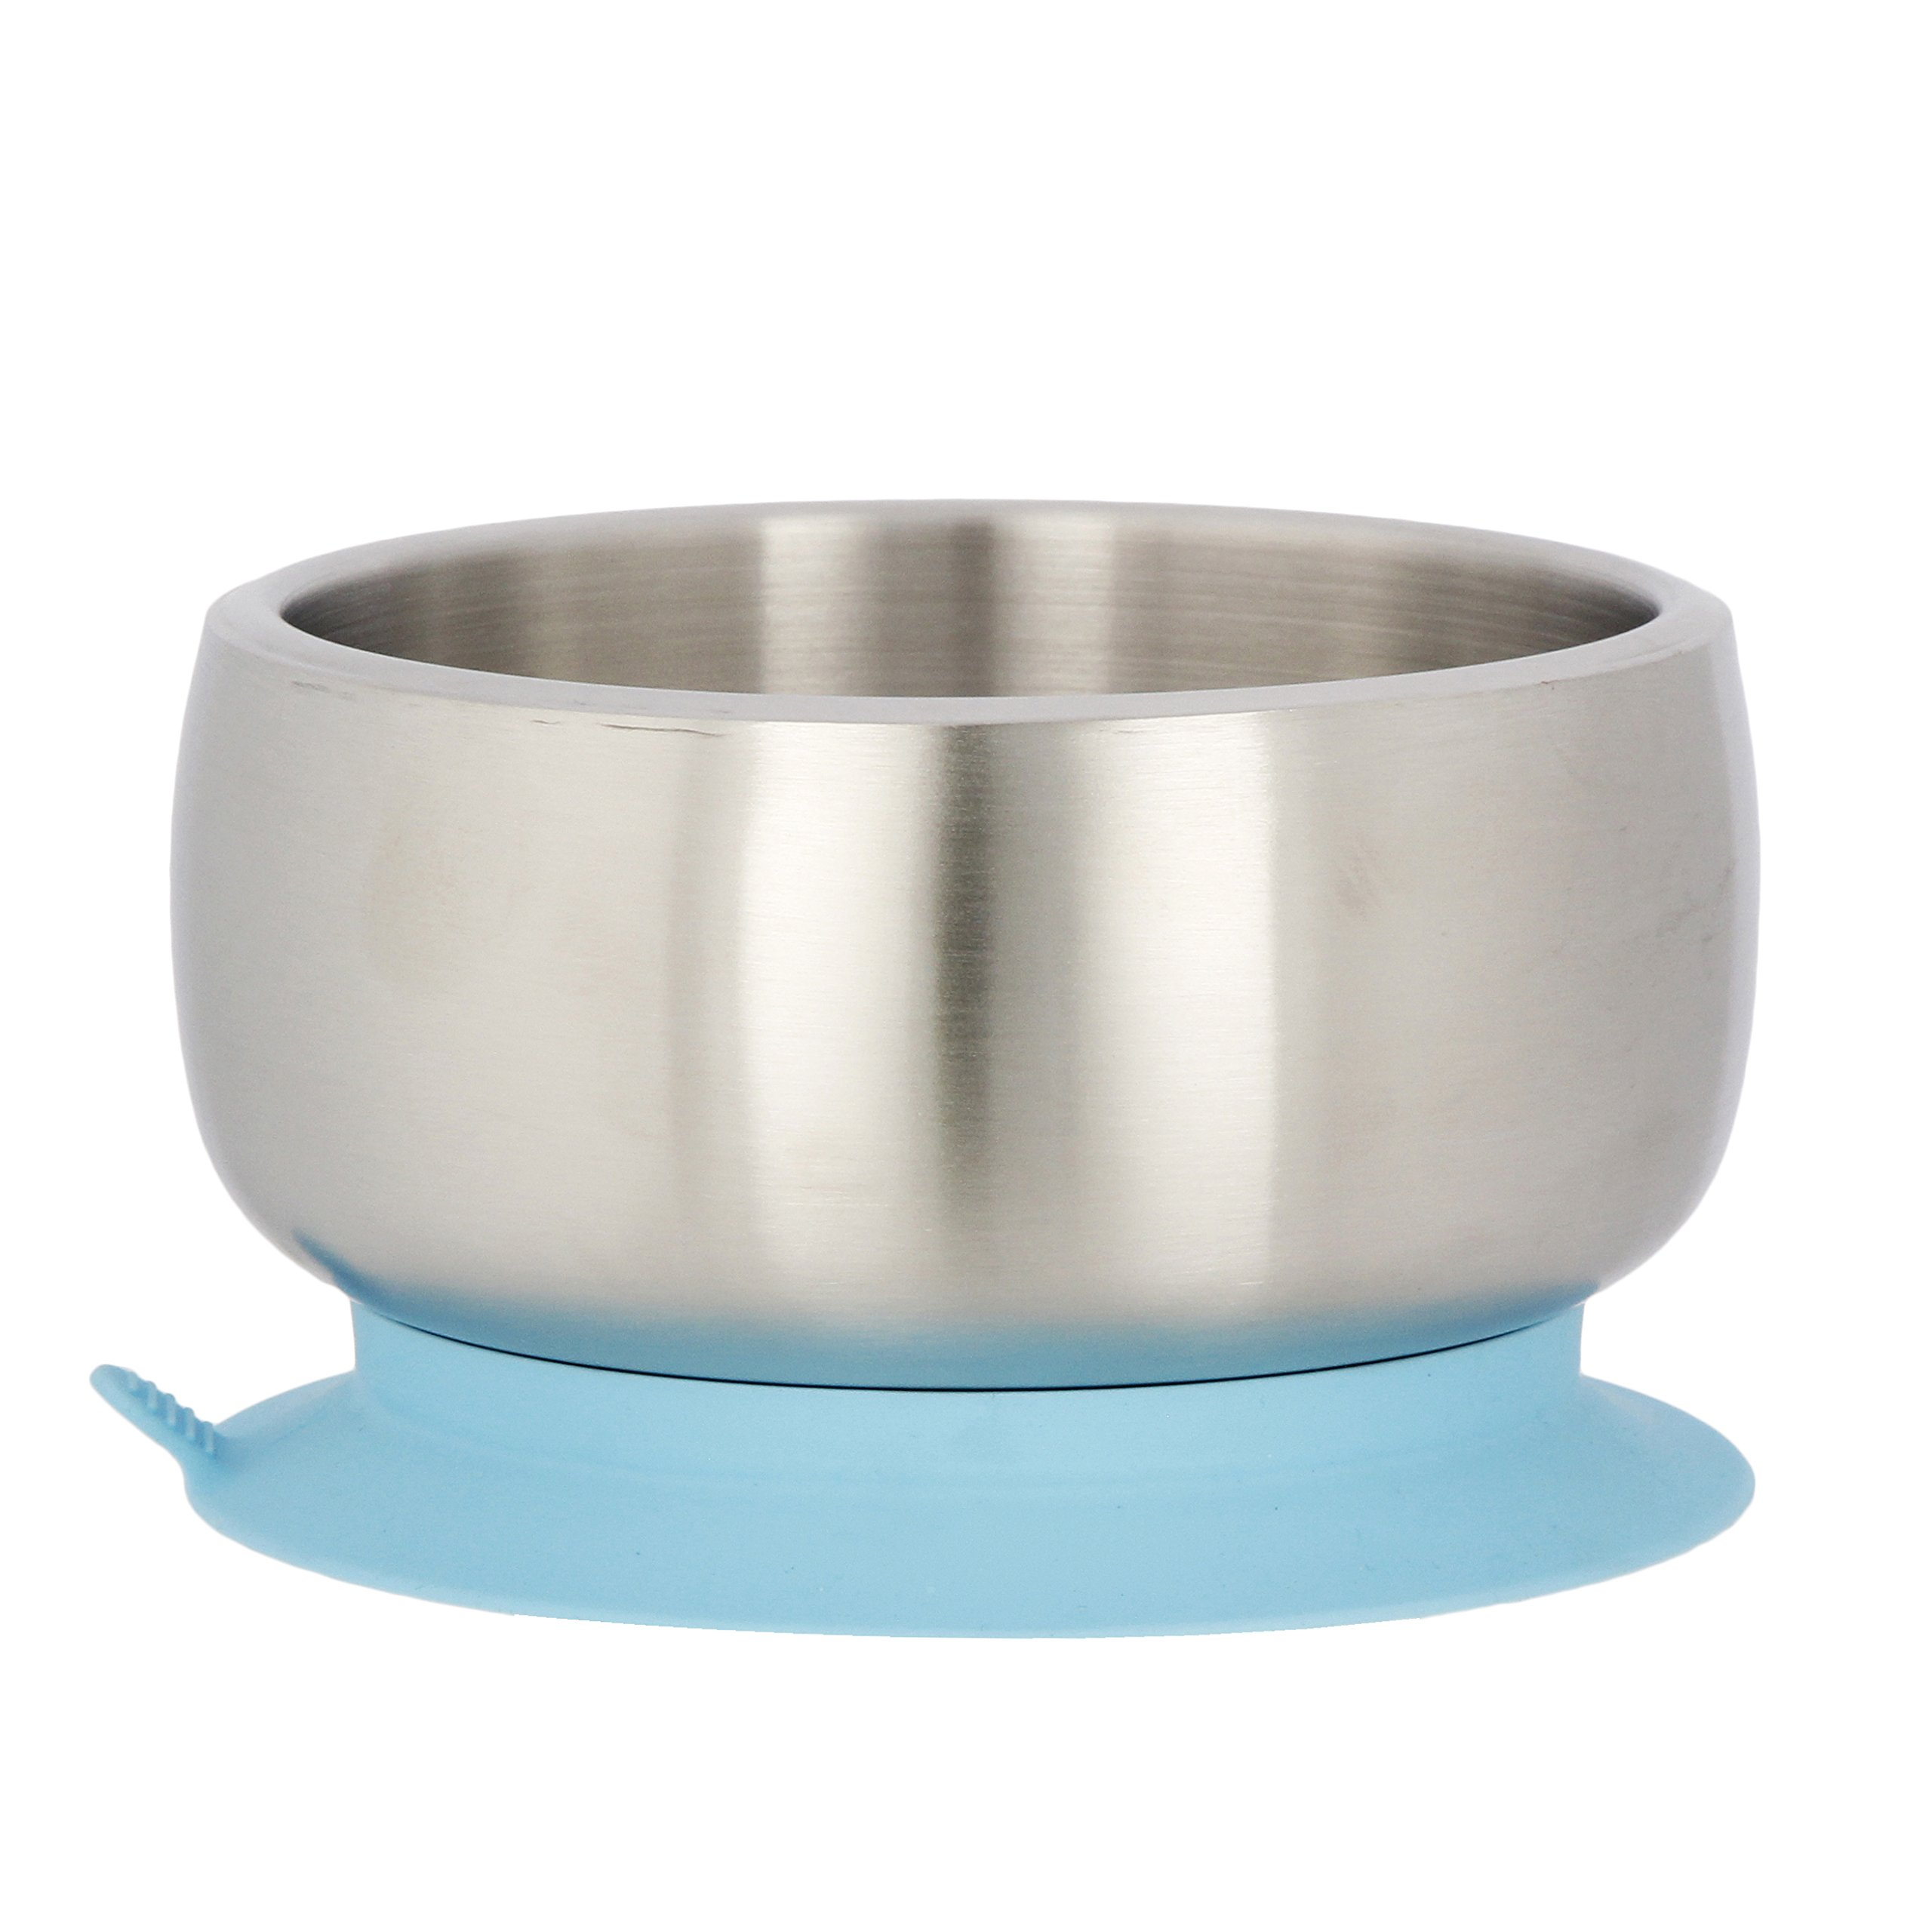 Avanchy Stainless Steel Baby, Toddler Feeding Divided Plate + Bowl + 2 Spoons Giftset. Infant, Kid or Child Gift. 18/8, BPA Free, BPS Free, Lead Free and Phthalate Free. Blue by Avanchy (Image #2)